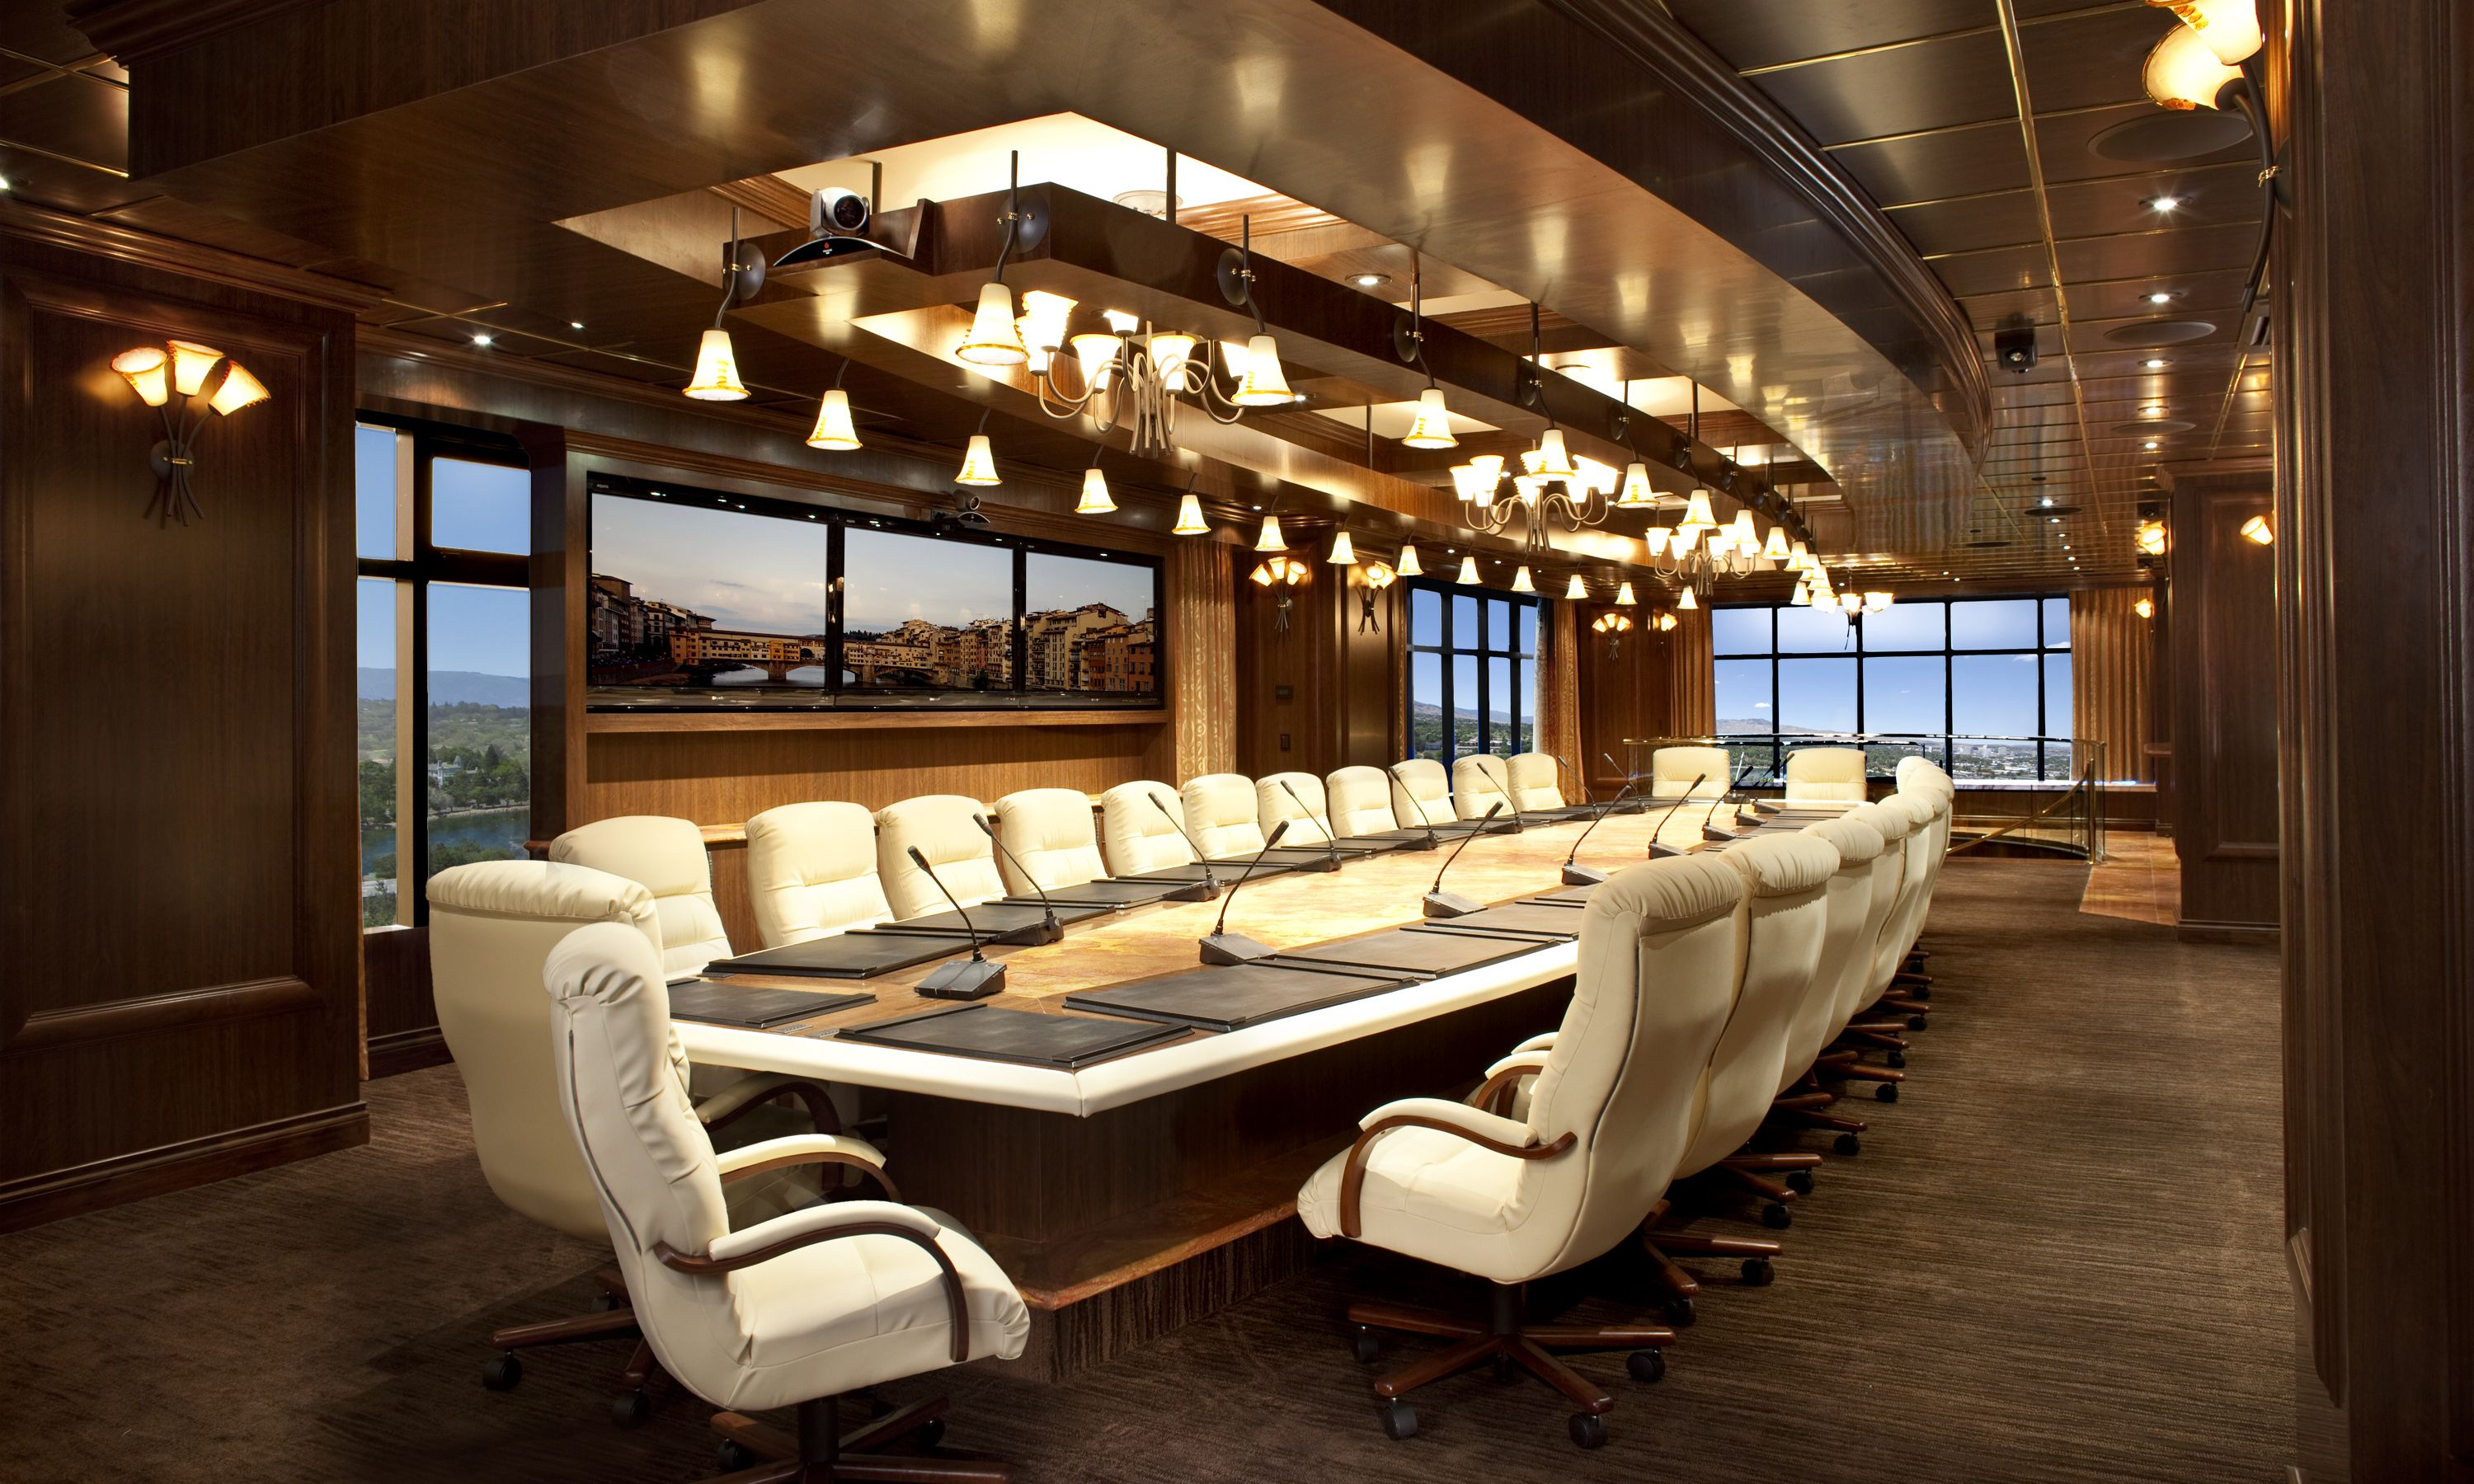 Image result for LUXURY CONFERENCE ROOM CONFERENCE ROOM